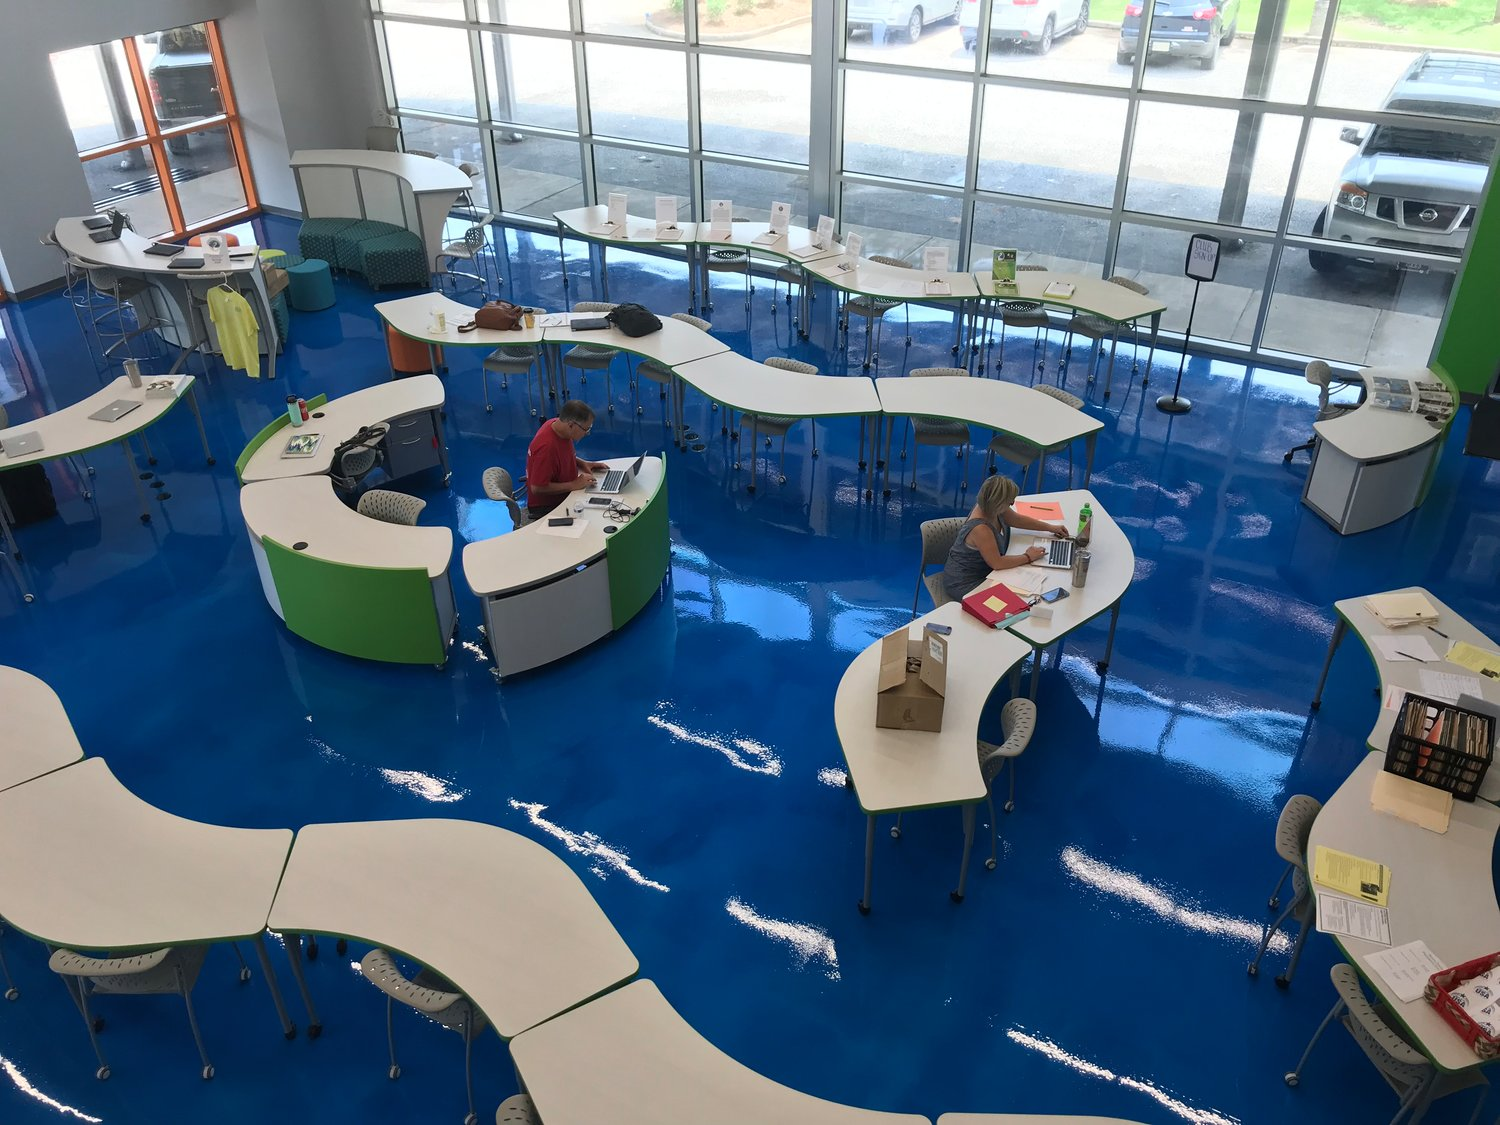 The Baldwin County Virtual School Daphne campus opened in 2019. School officials plan to expand virtual school programs in 2020.